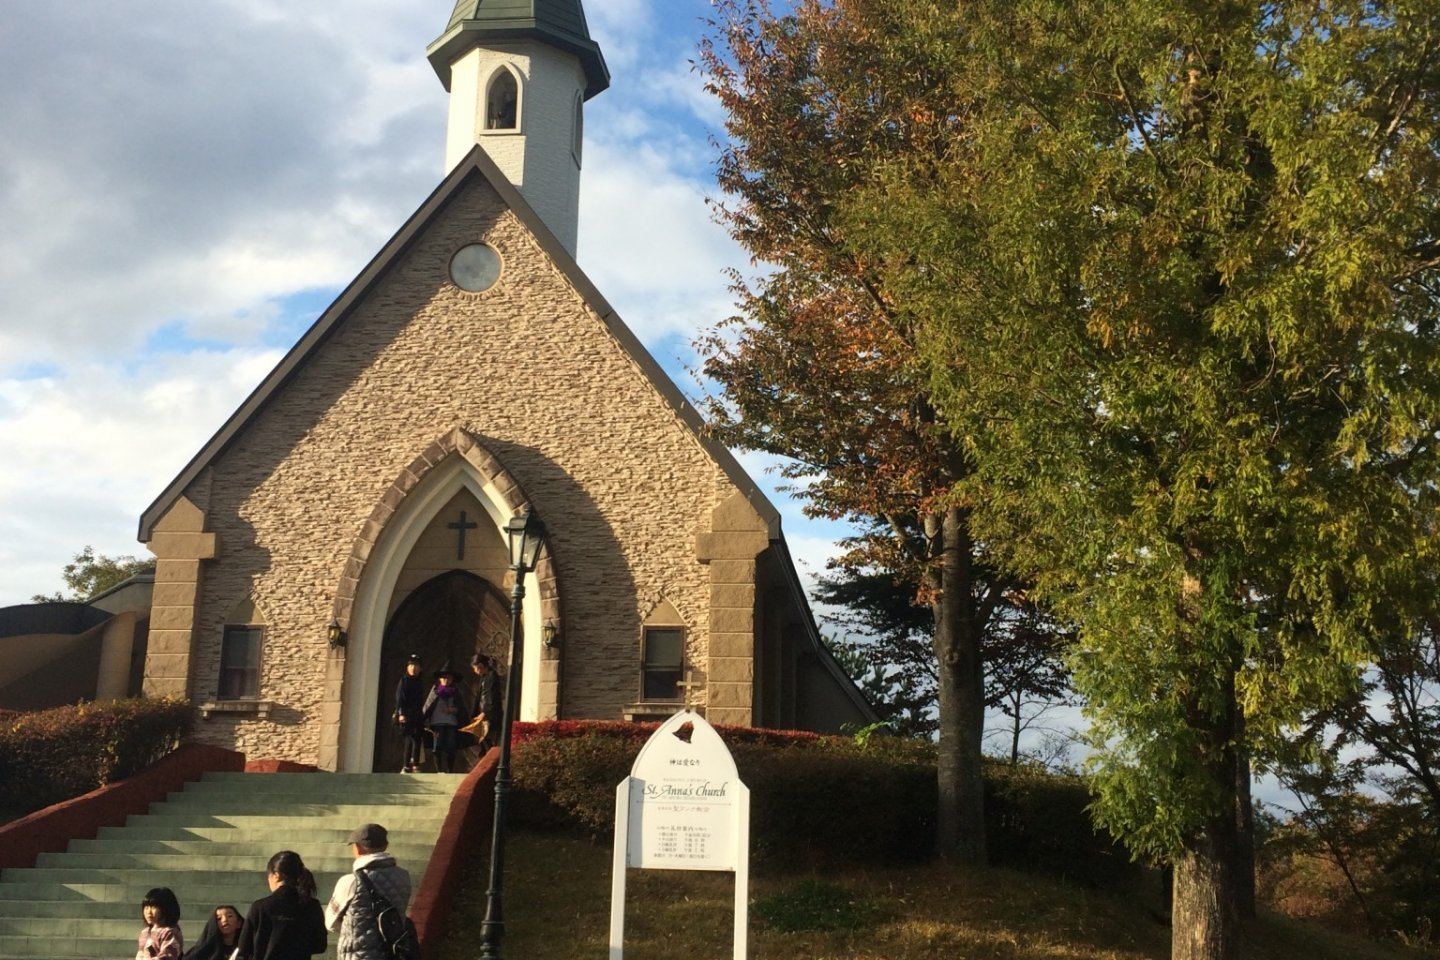 A wedding chapel sits upon the top of the hill. The church is available for wedding ceremonies.